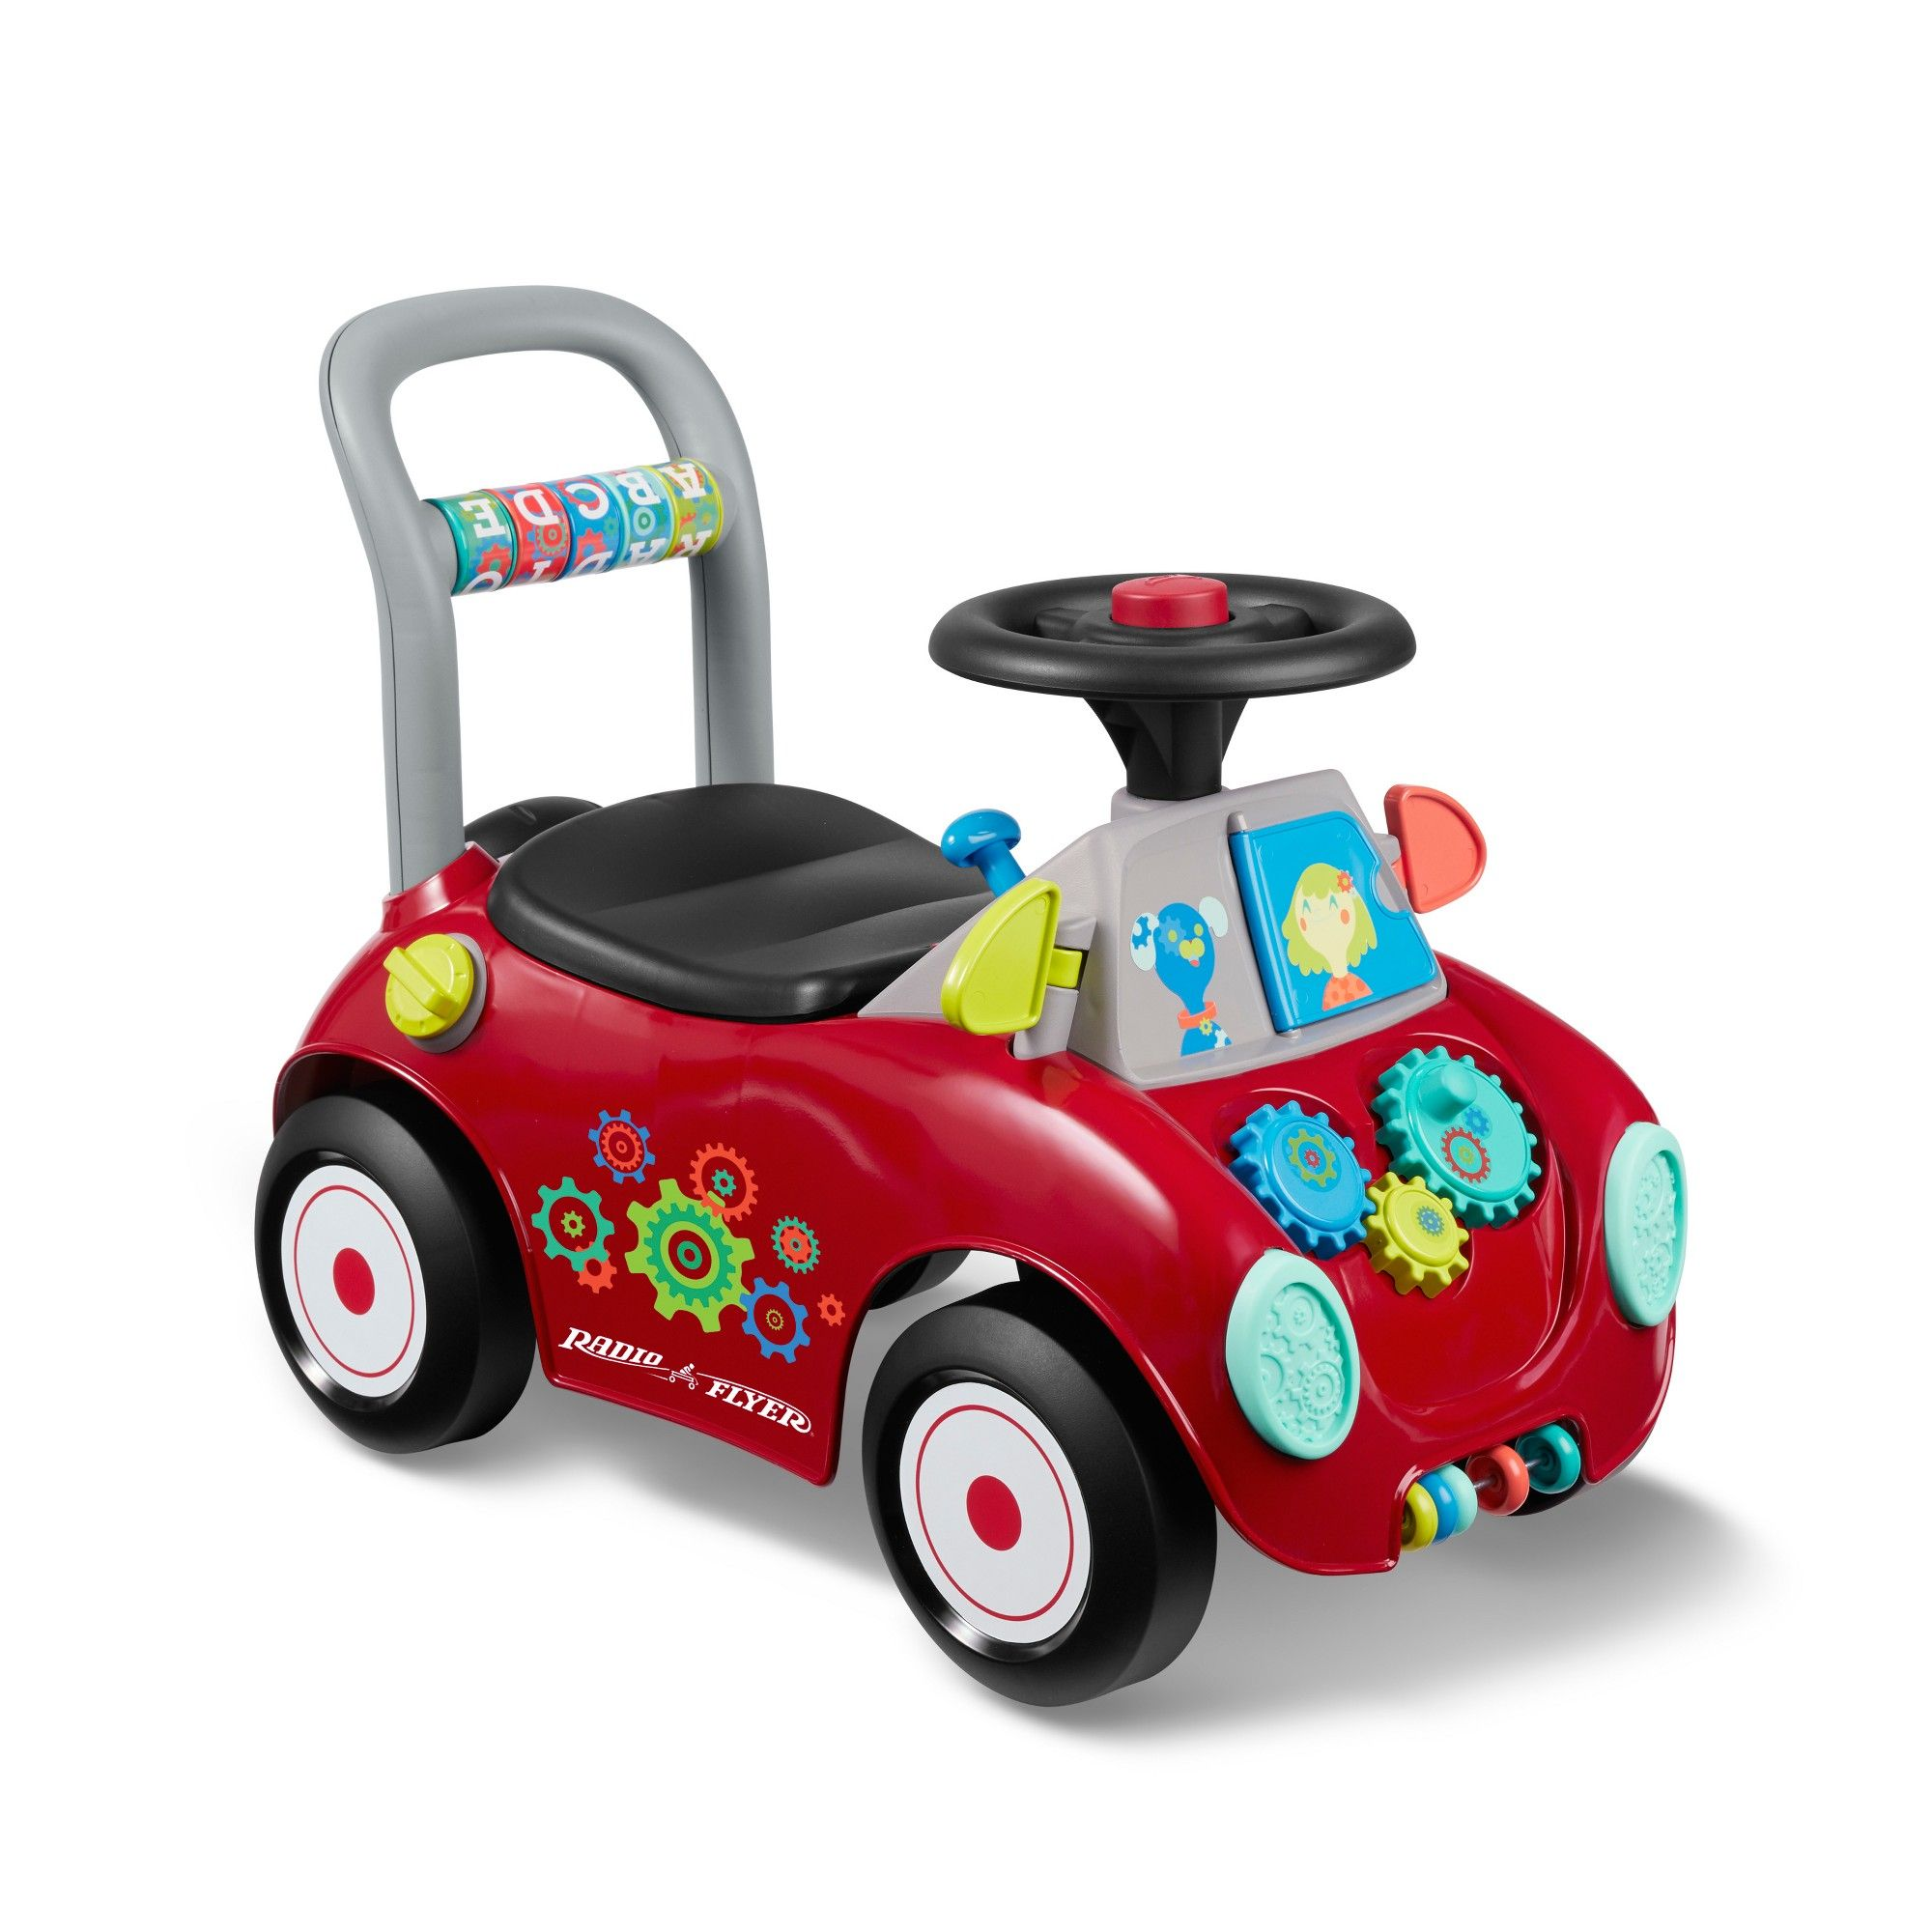 Radio Flyer Busy Buggy Kids ride on toys, Ride on toys